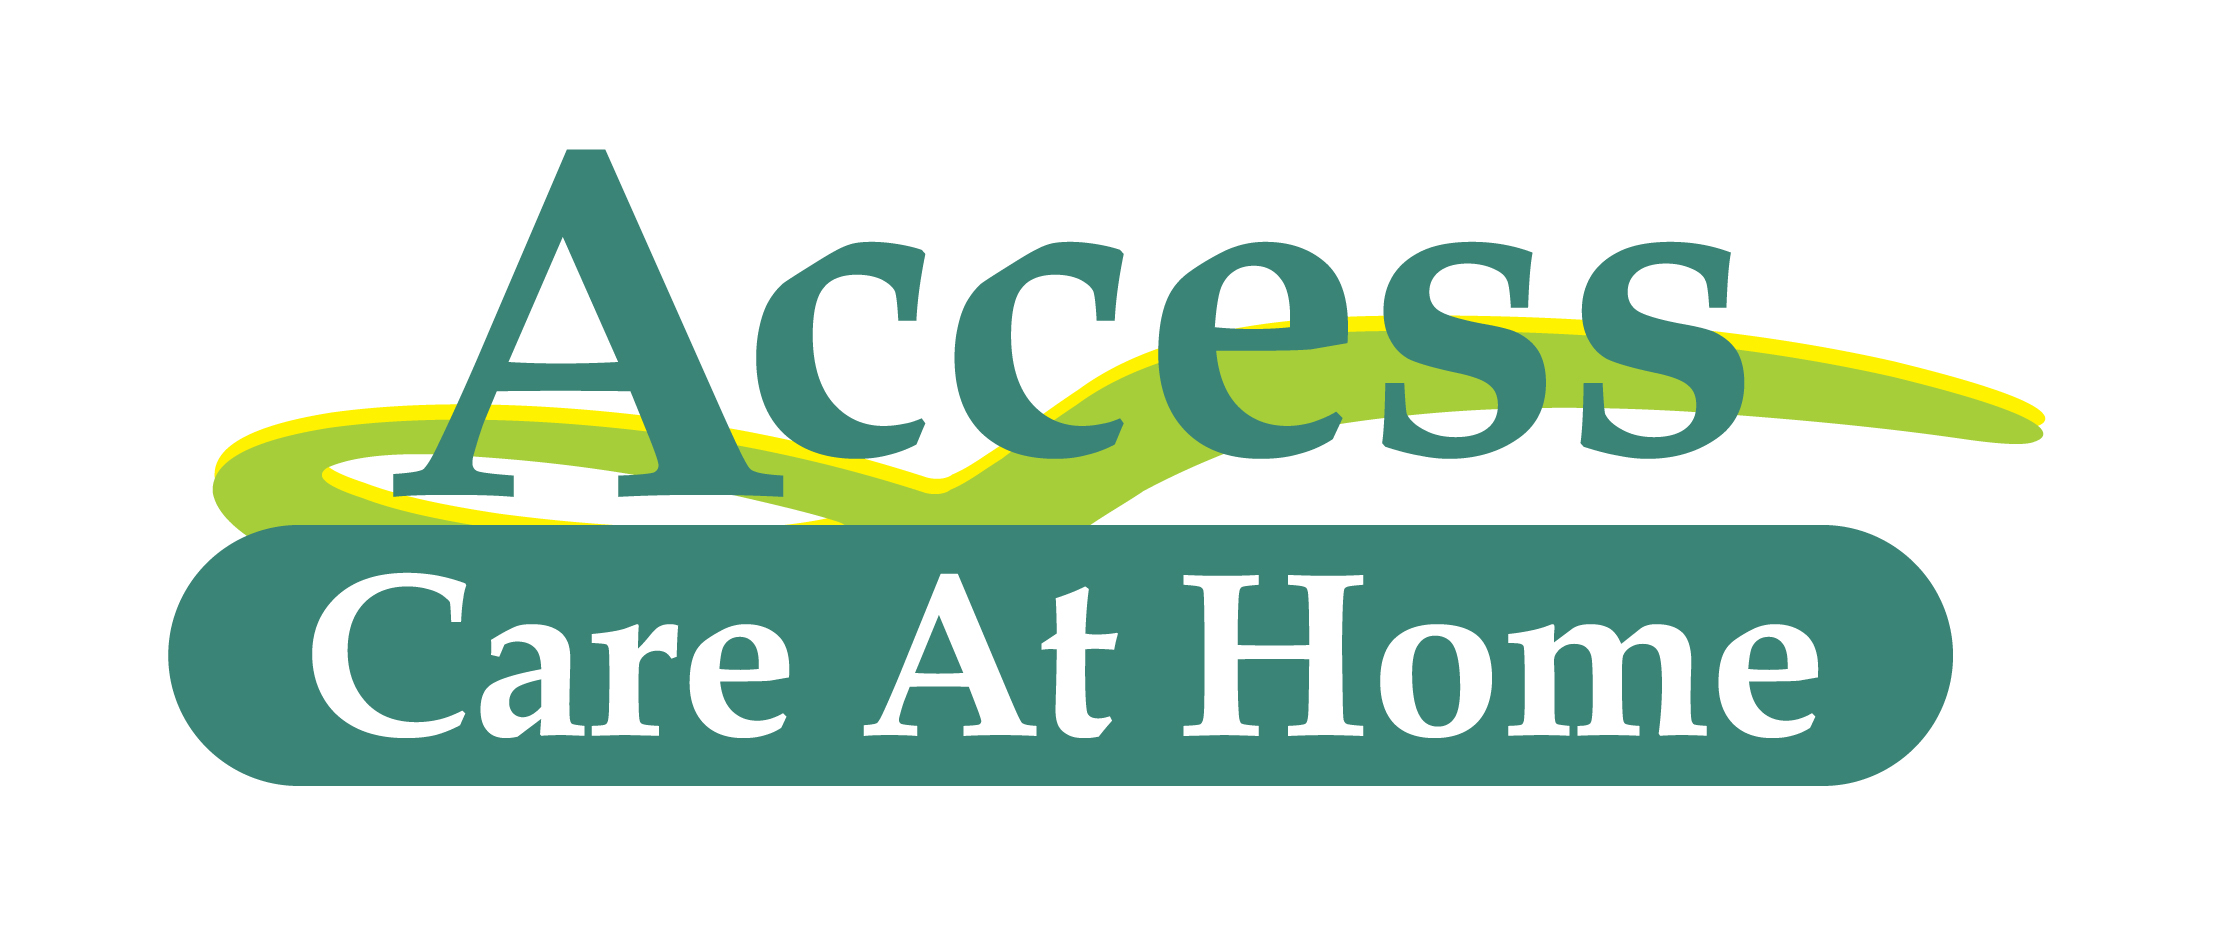 Access Care At Home